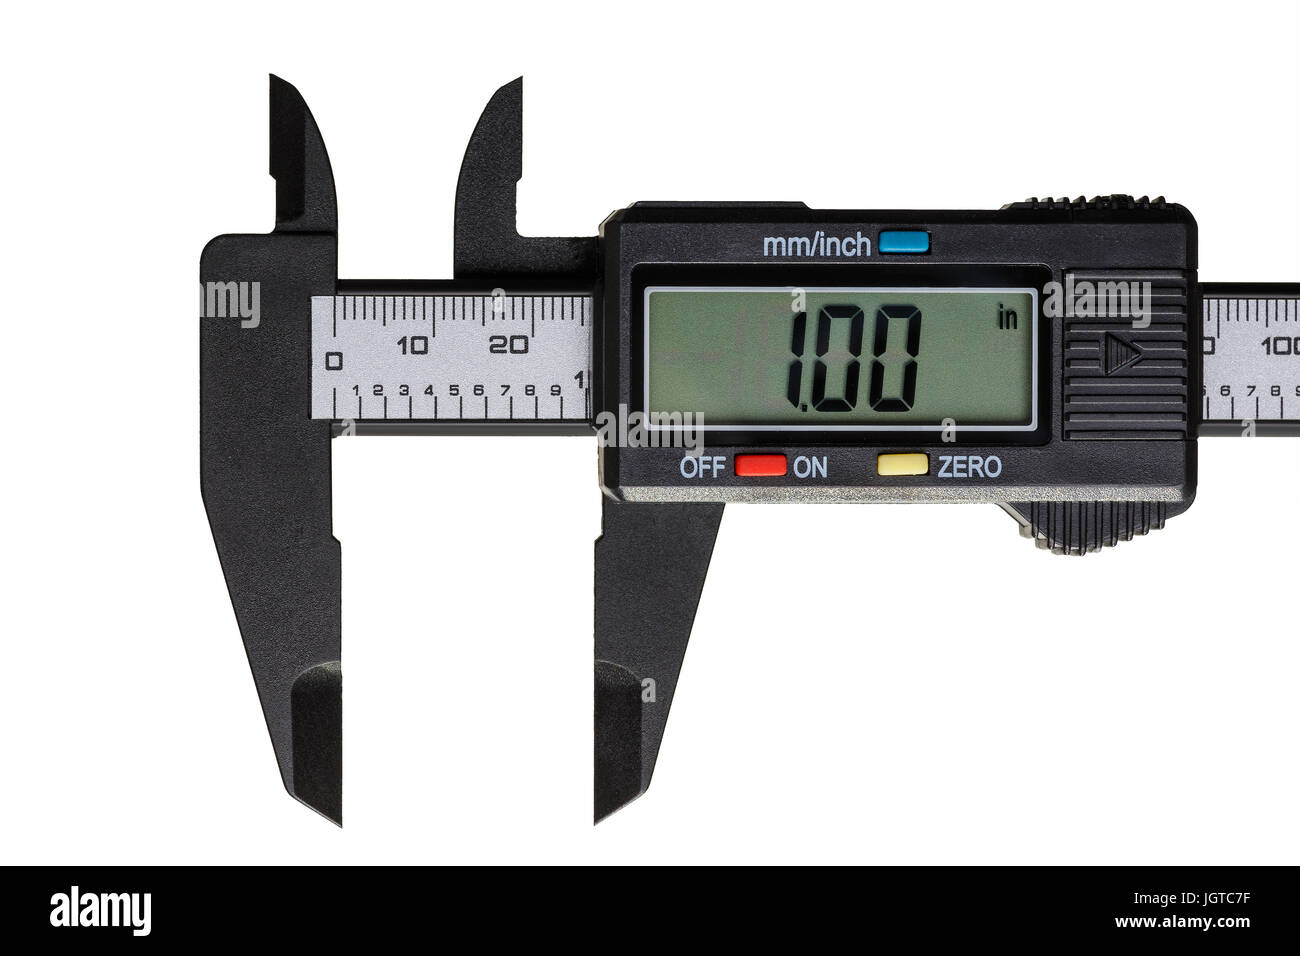 Electronic caliper open on a one inch on the scale isolated on a white background - Stock Image